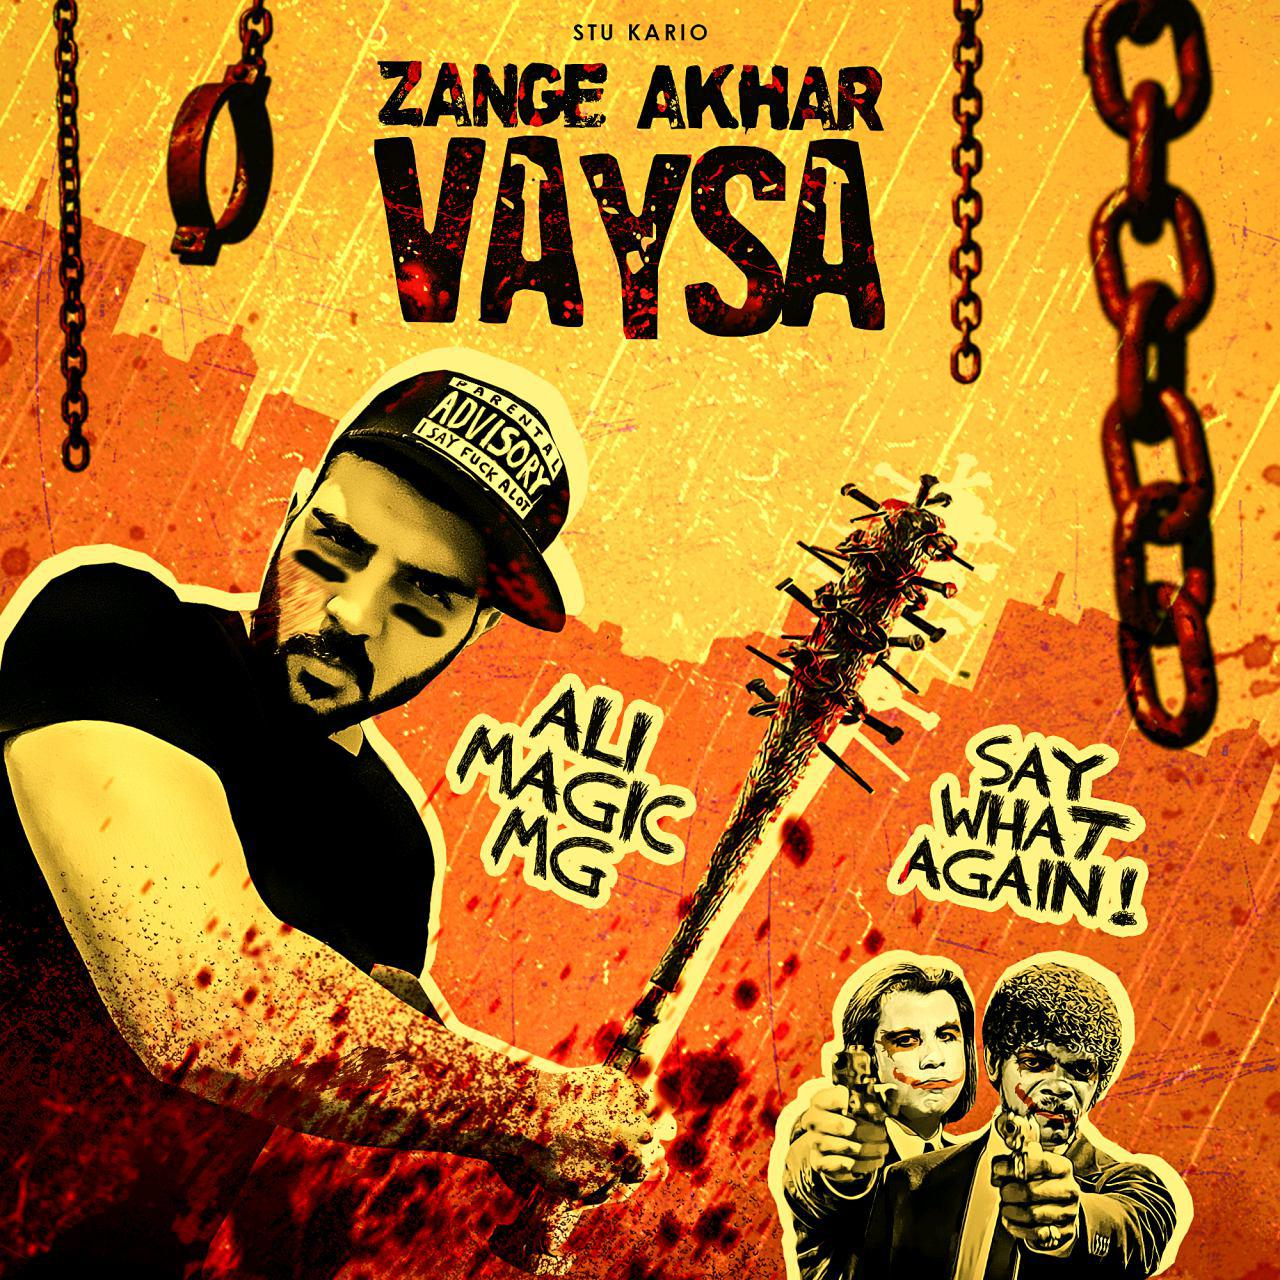 Ali MaGic MG – Zange Akhar Vaysa